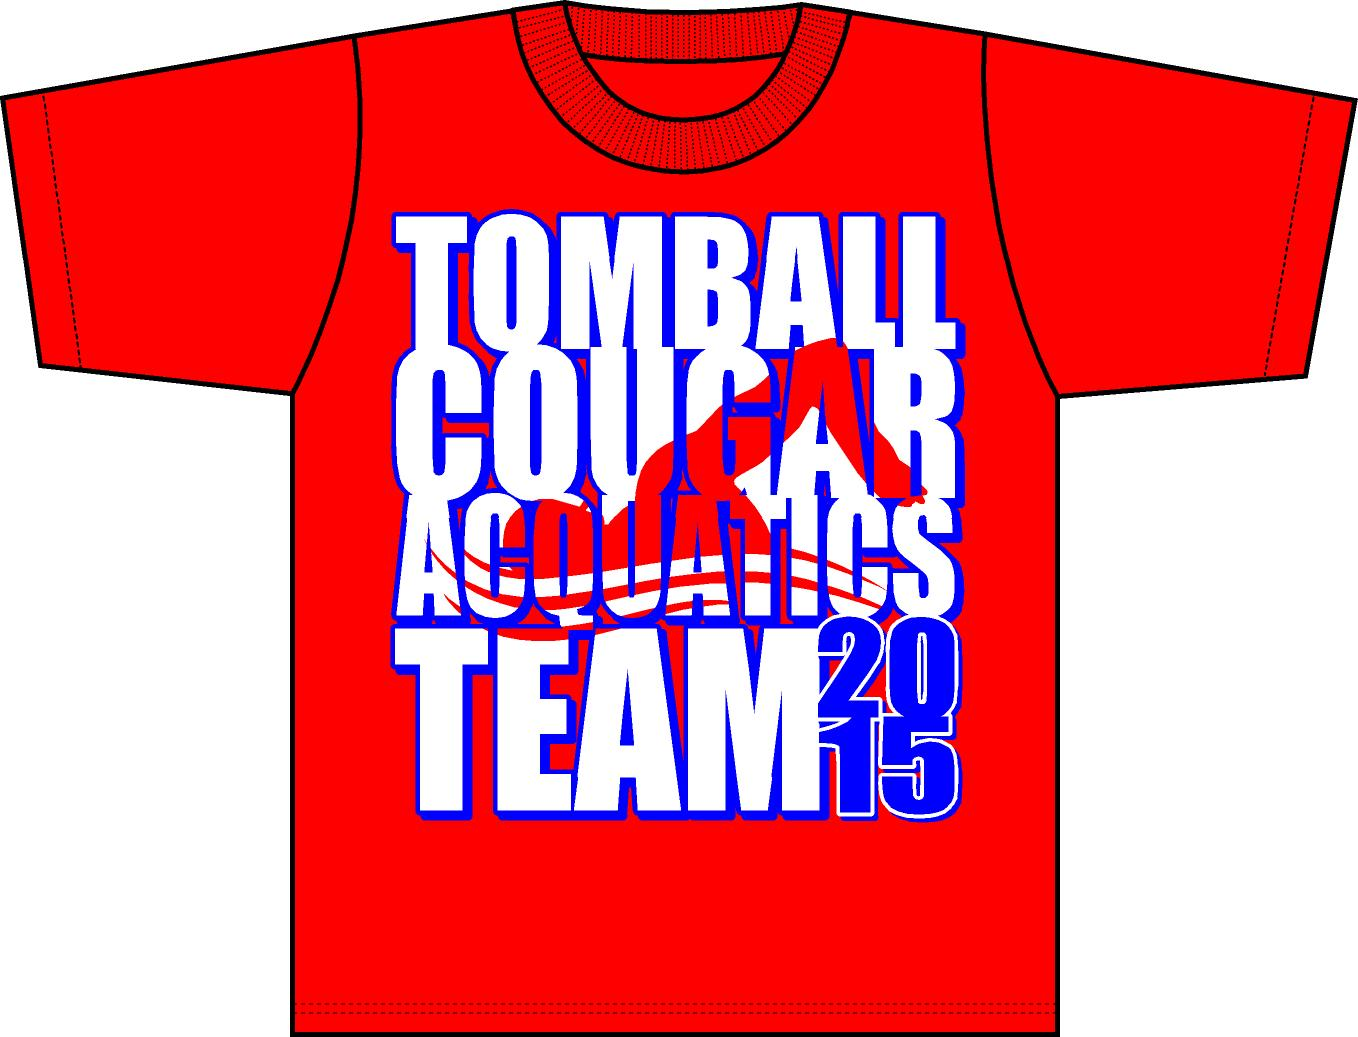 tomball-cougars-swim.jpg